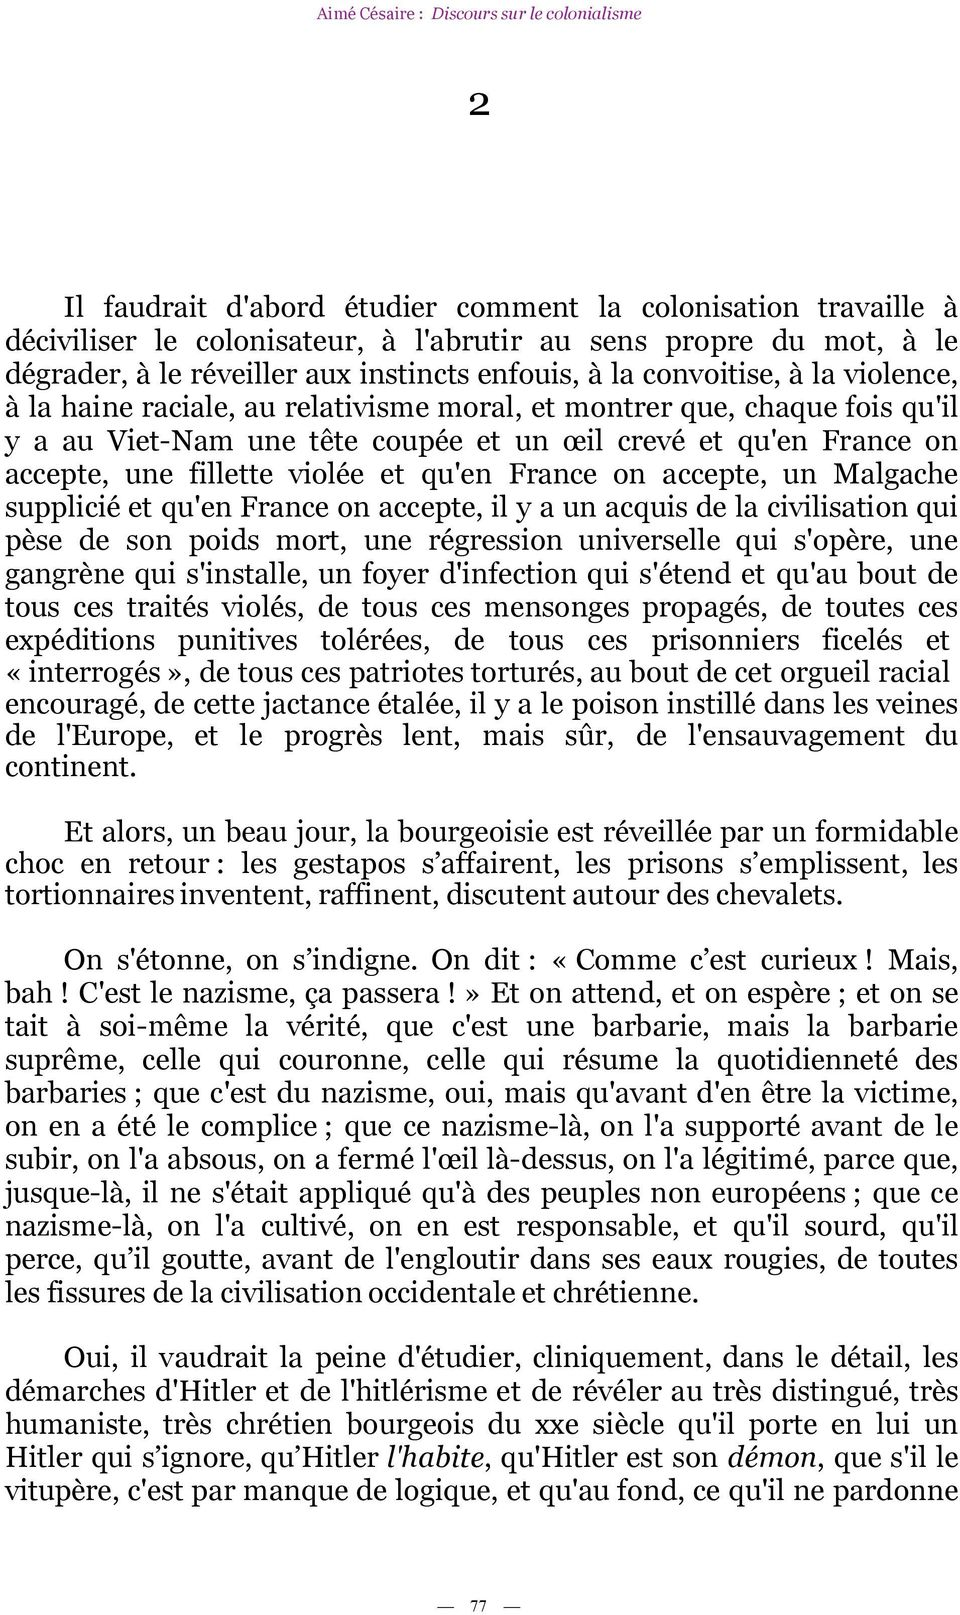 France on accepte, un Malgache supplicié et qu'en France on accepte, il y a un acquis de la civilisation qui pèse de son poids mort, une régression universelle qui s'opère, une gangrène qui